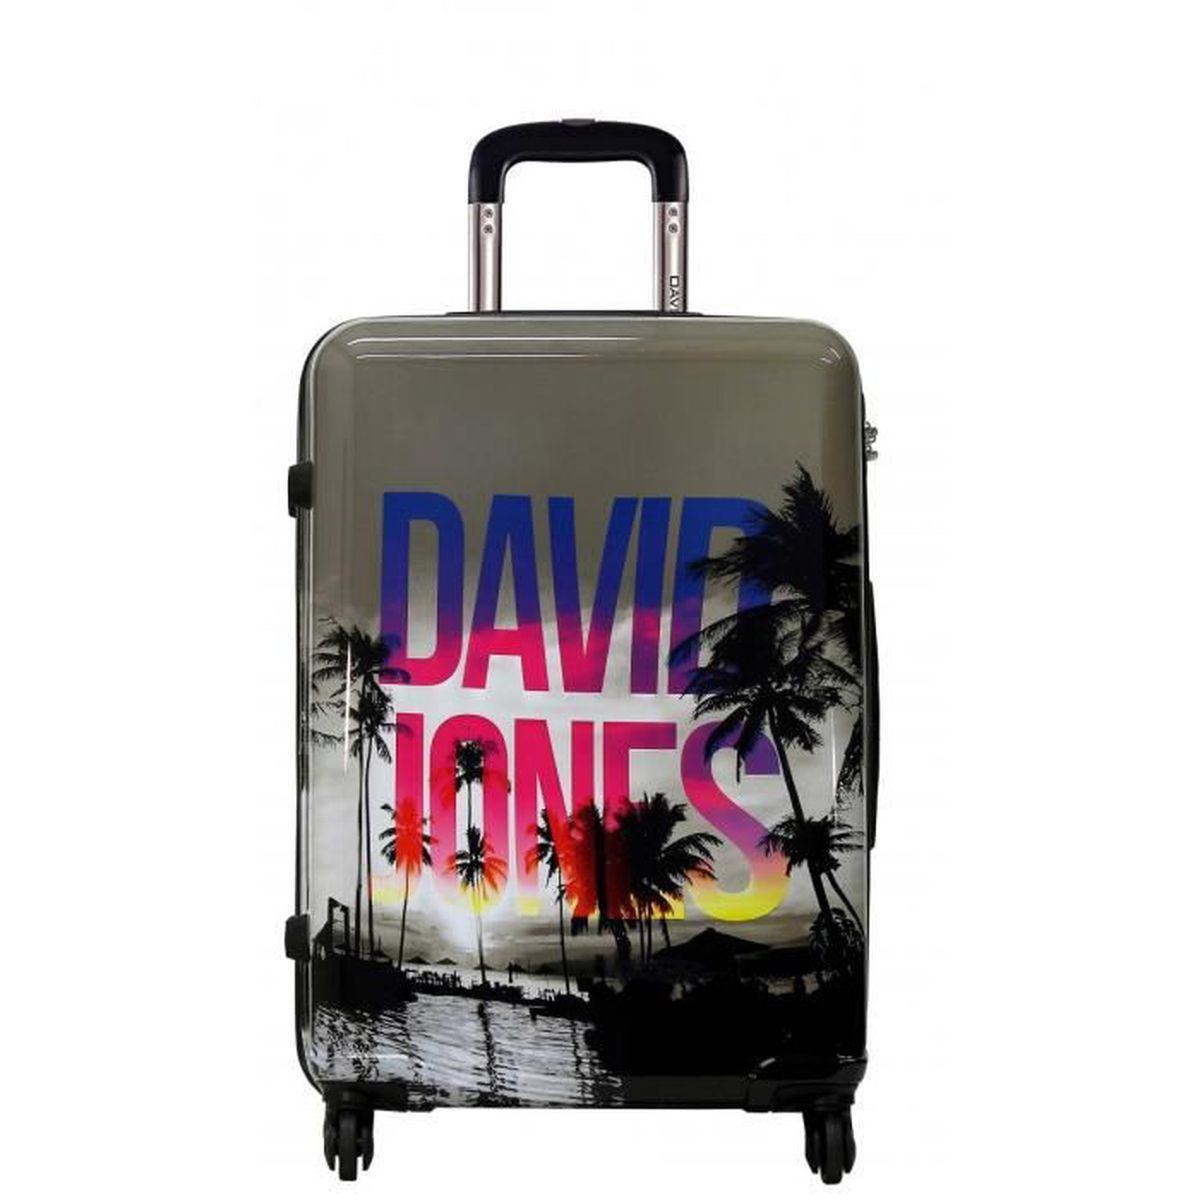 valise cabine ryanair david jones palmiers ba20581p gris achat vente valise bagage. Black Bedroom Furniture Sets. Home Design Ideas